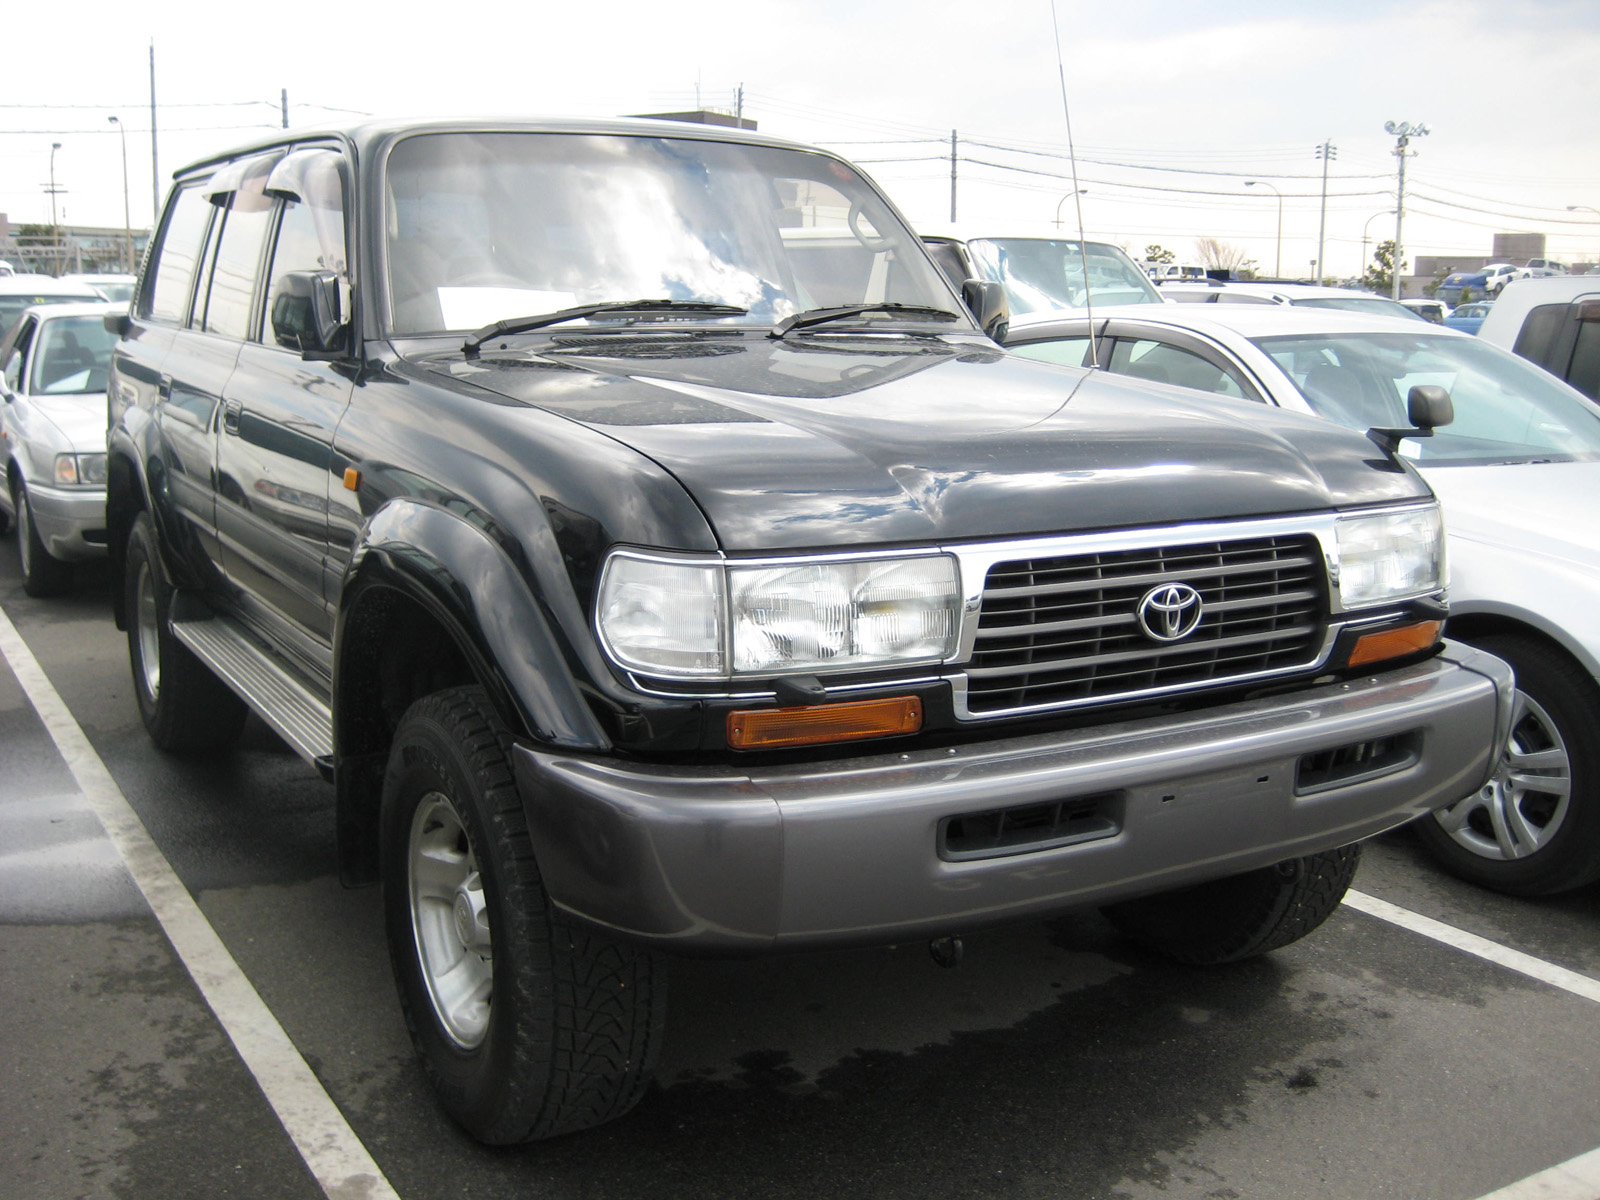 Toyota Land Cruiser 80 photo 68023